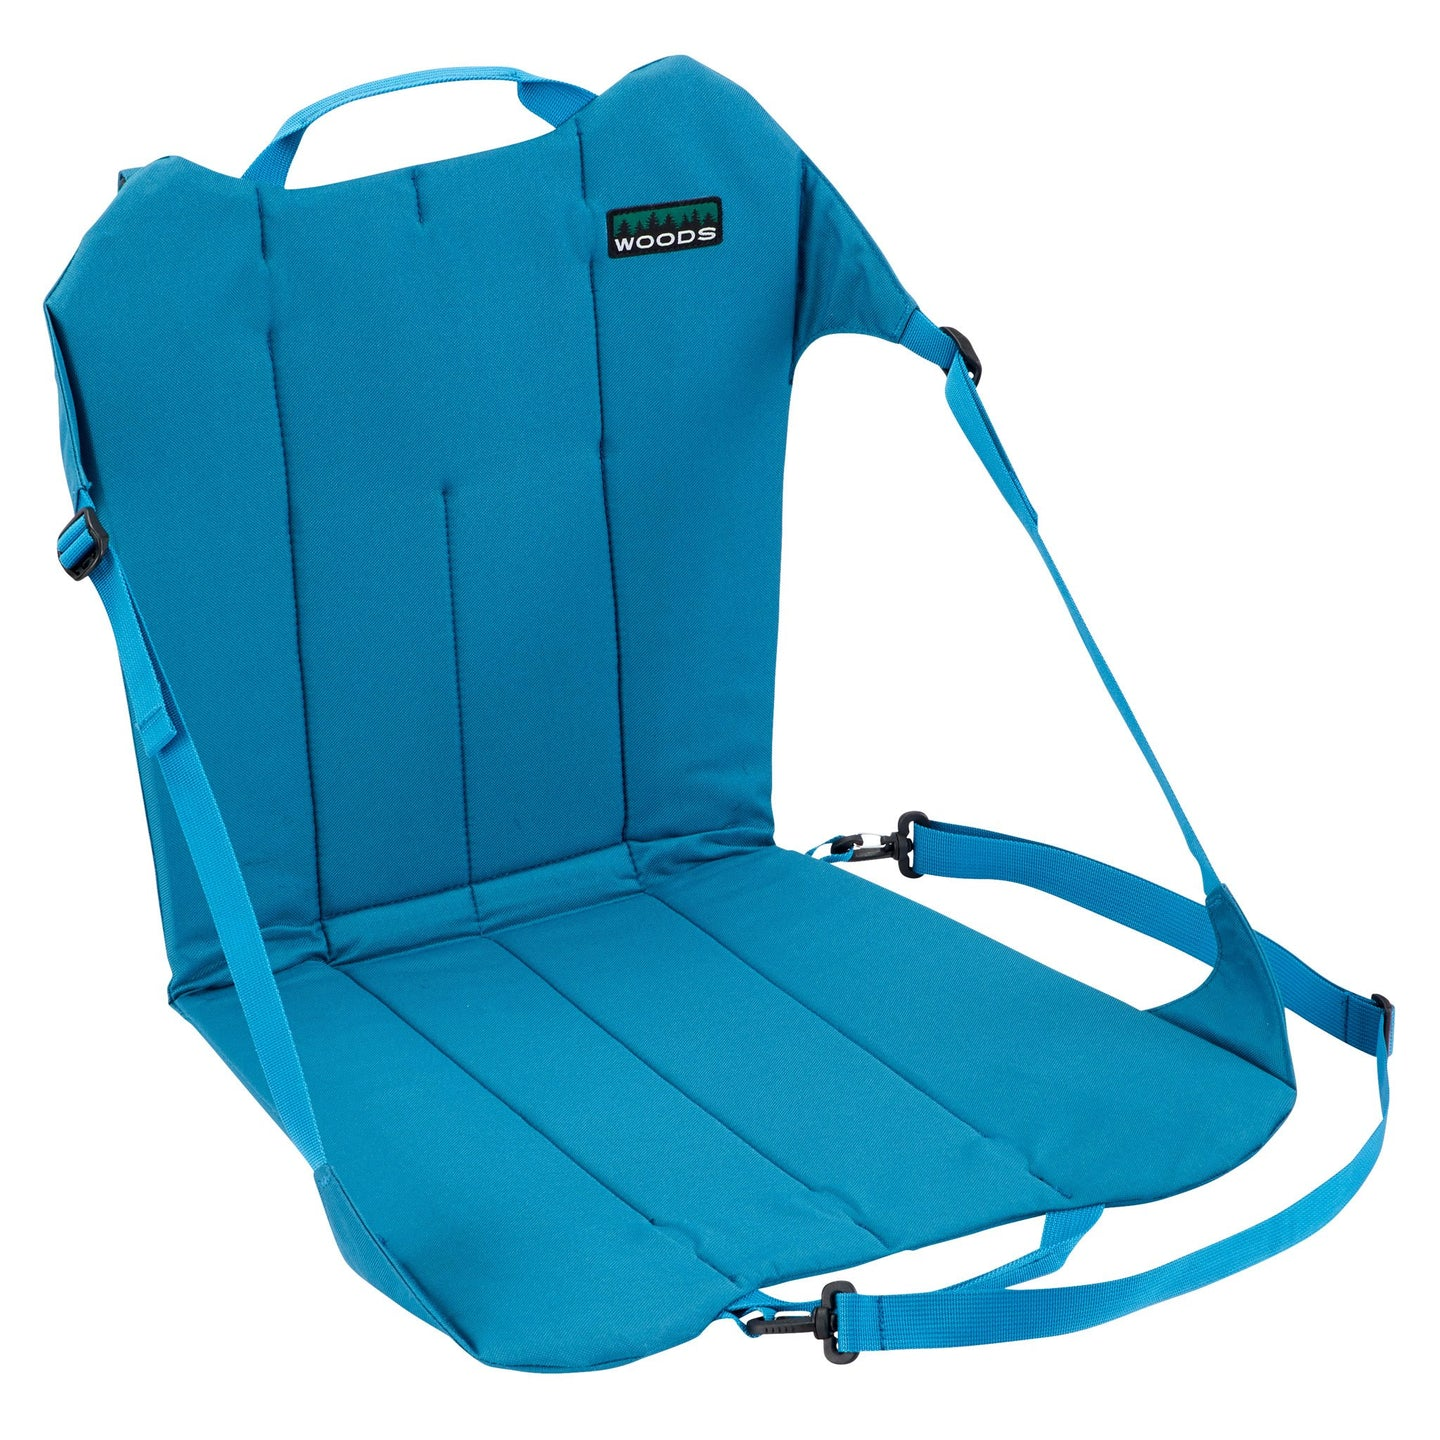 Woods Backpacker Folding Camping Chair - Teal